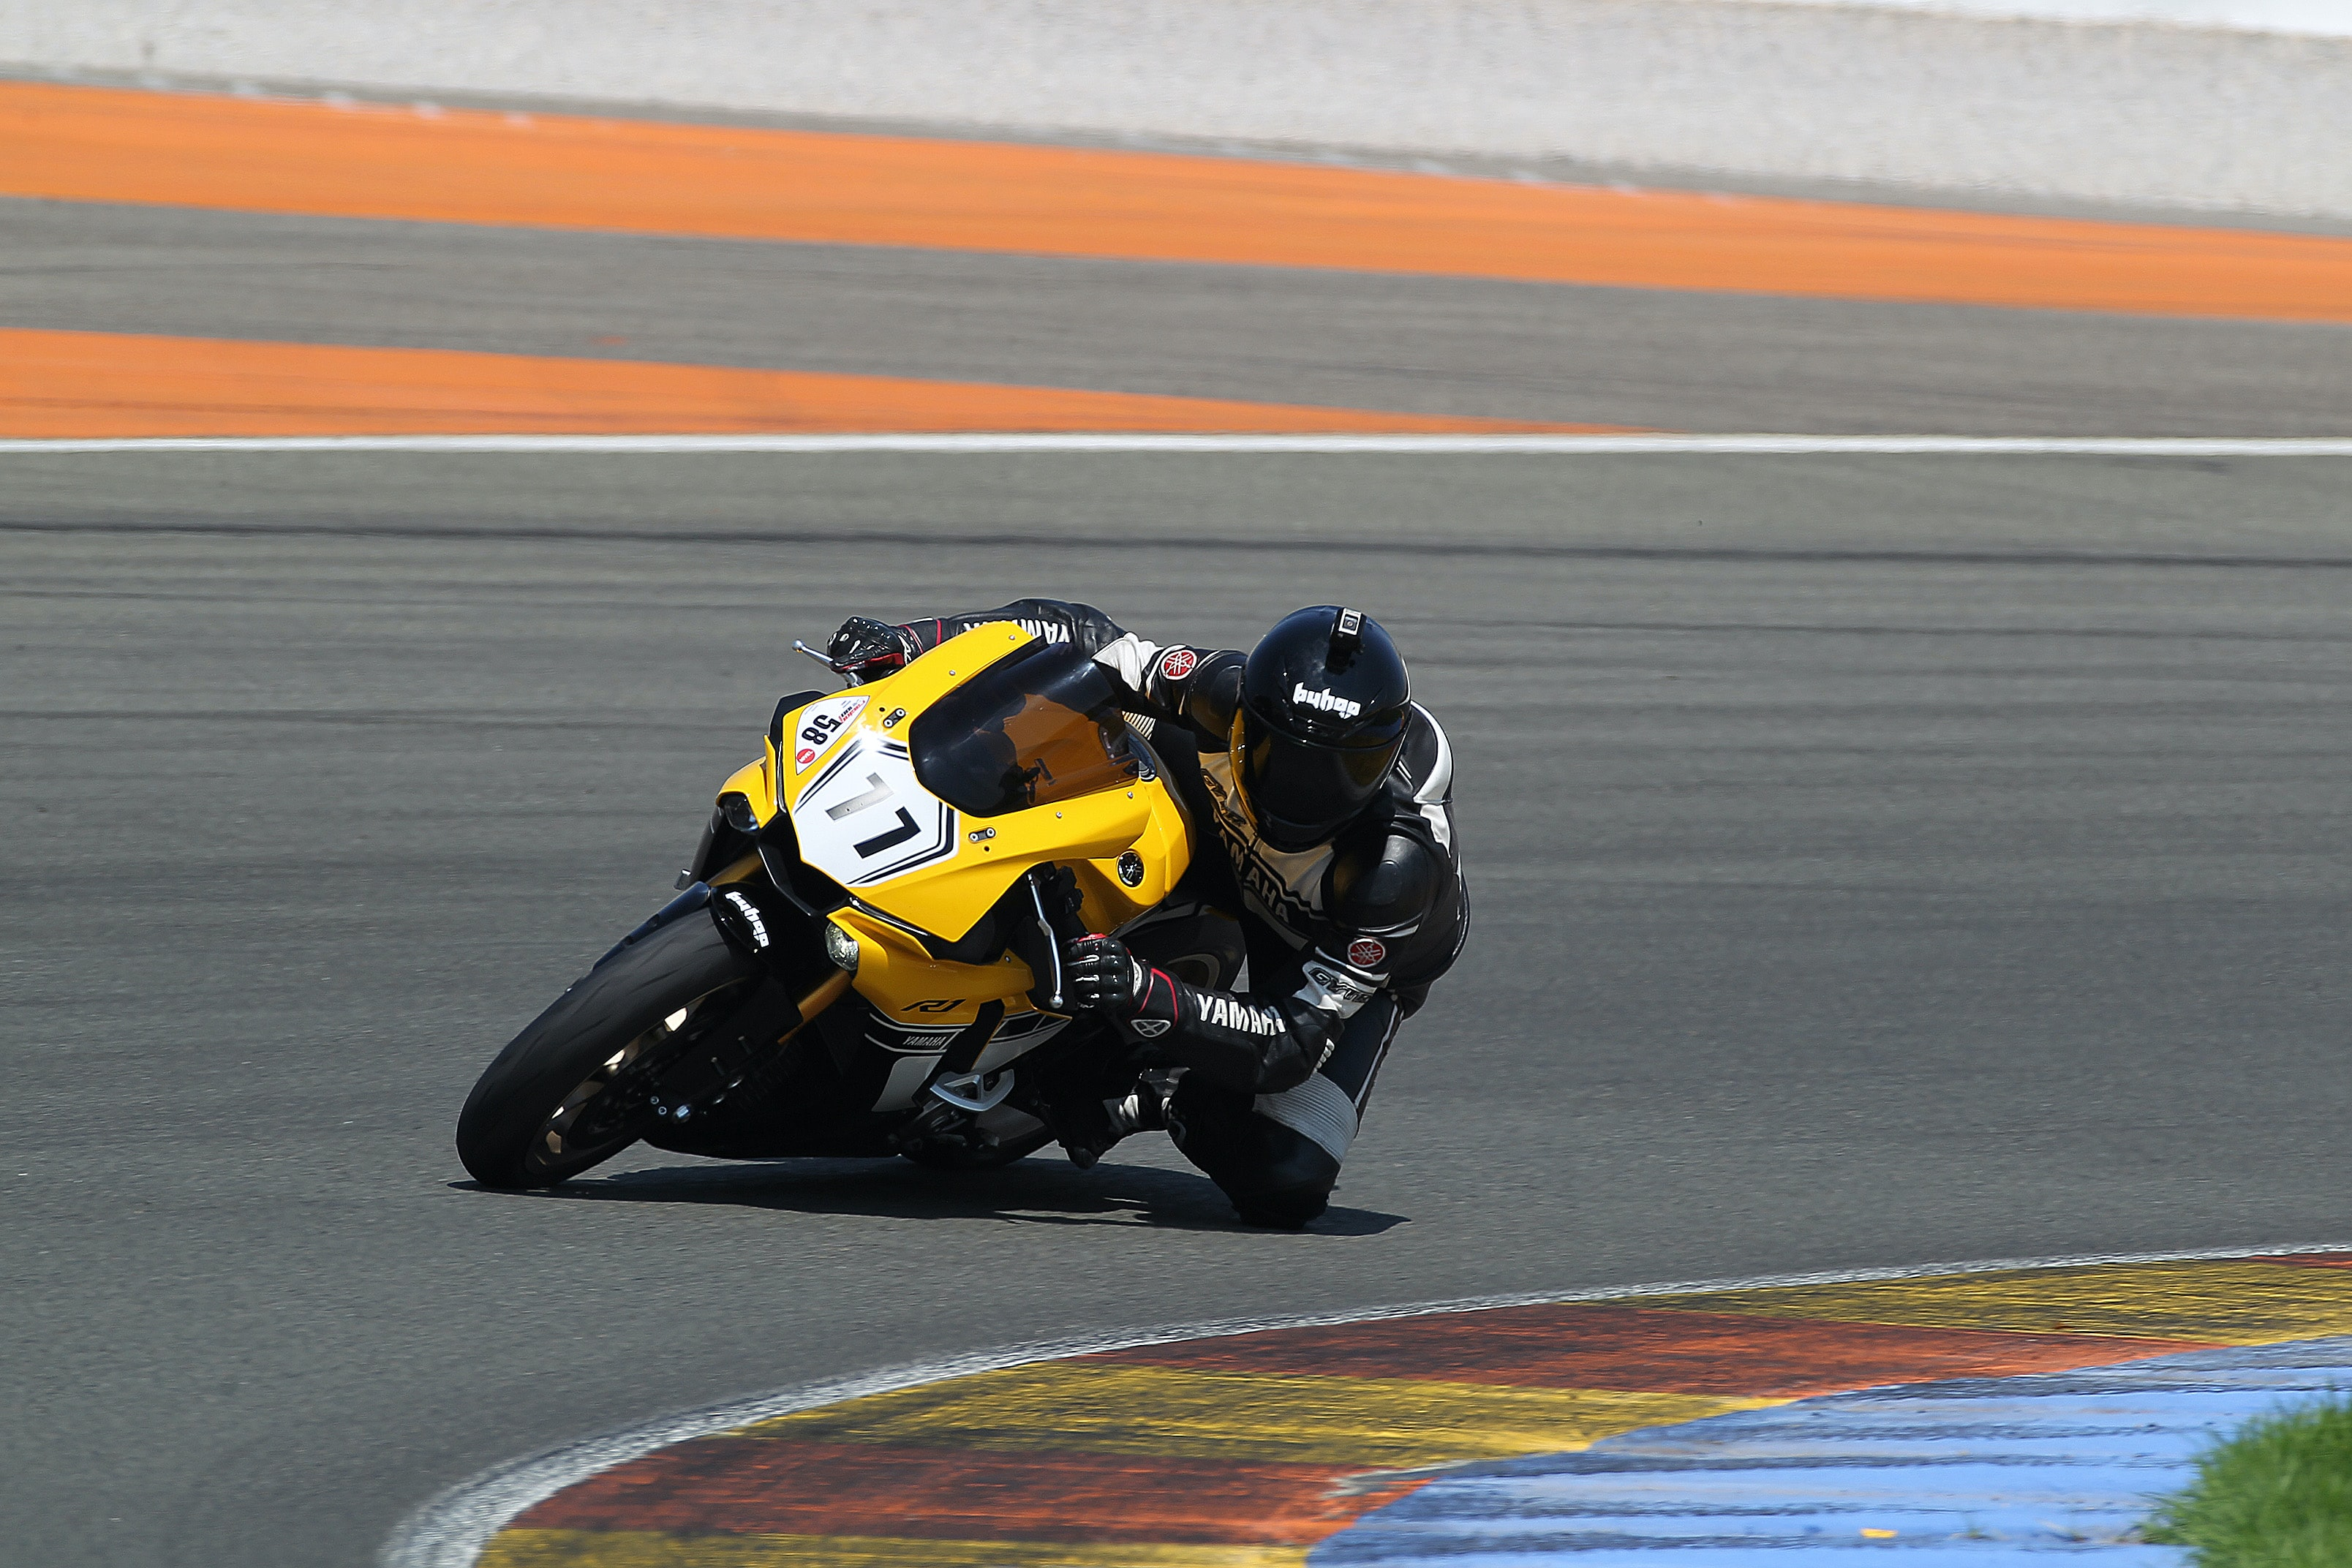 man riding yellow sportbike